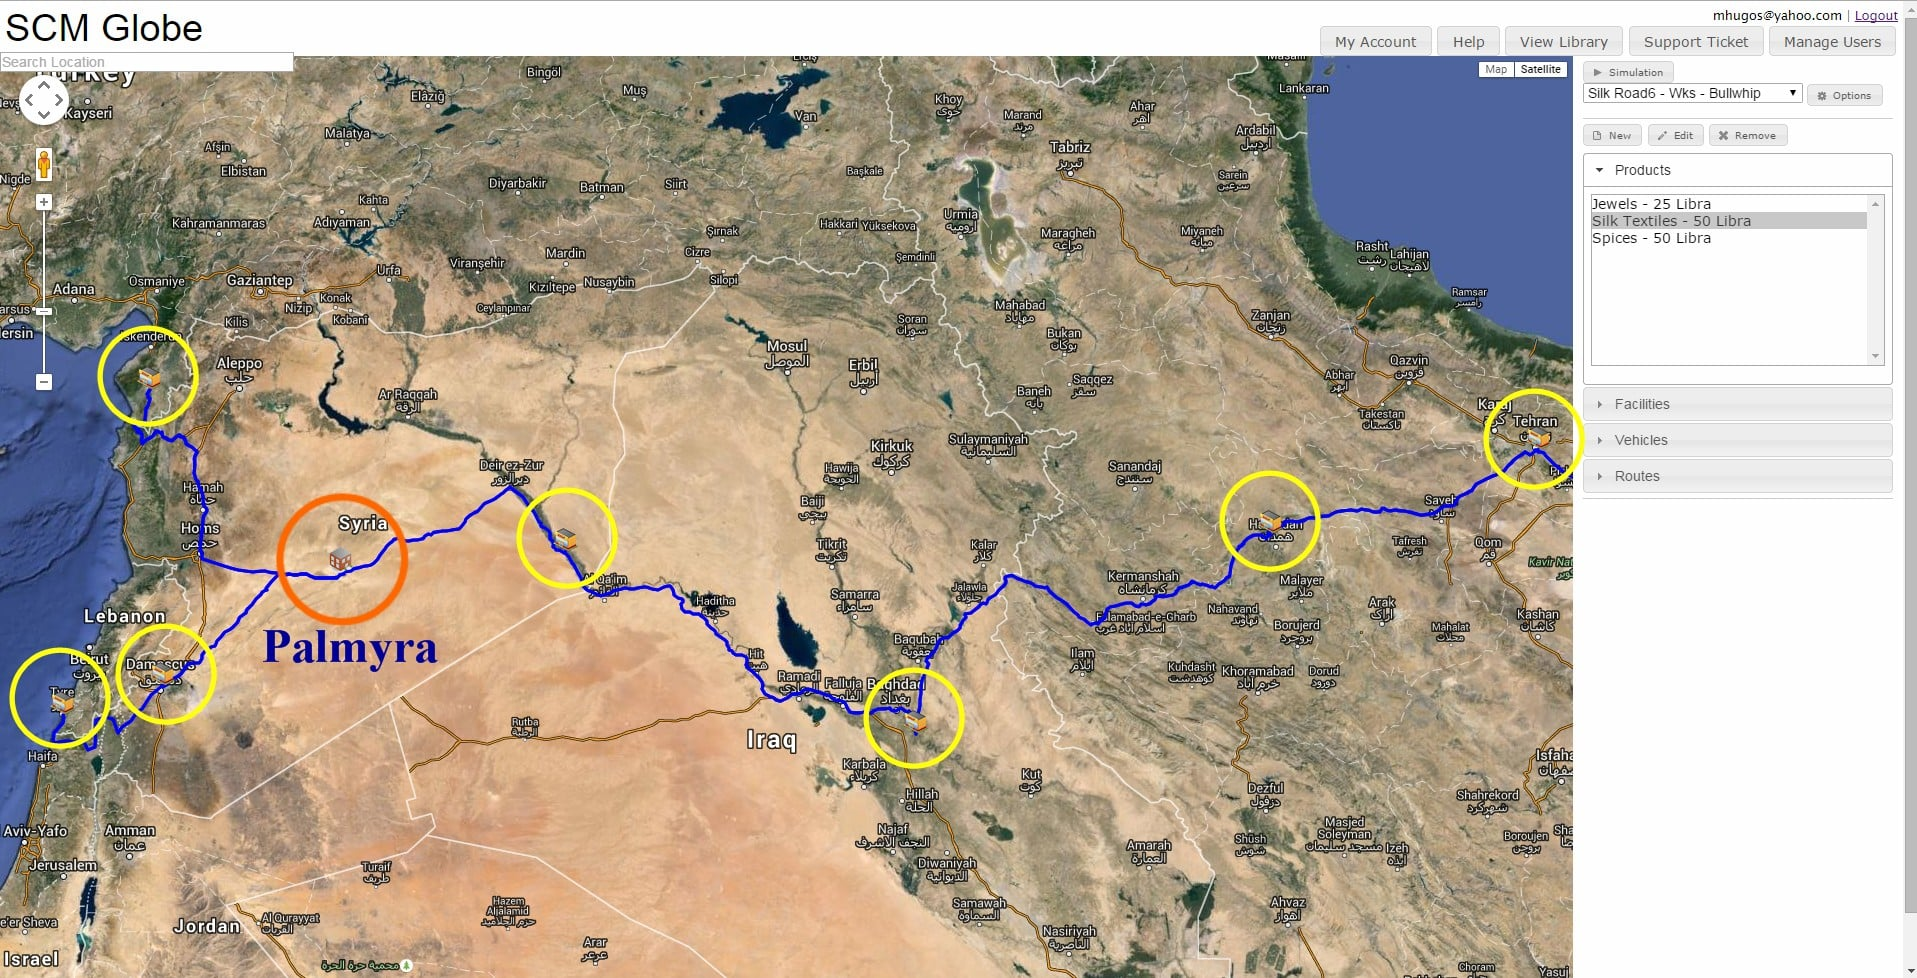 A map showing the silk road route through Palmyra, highlighted in blue with yellow circles on it.